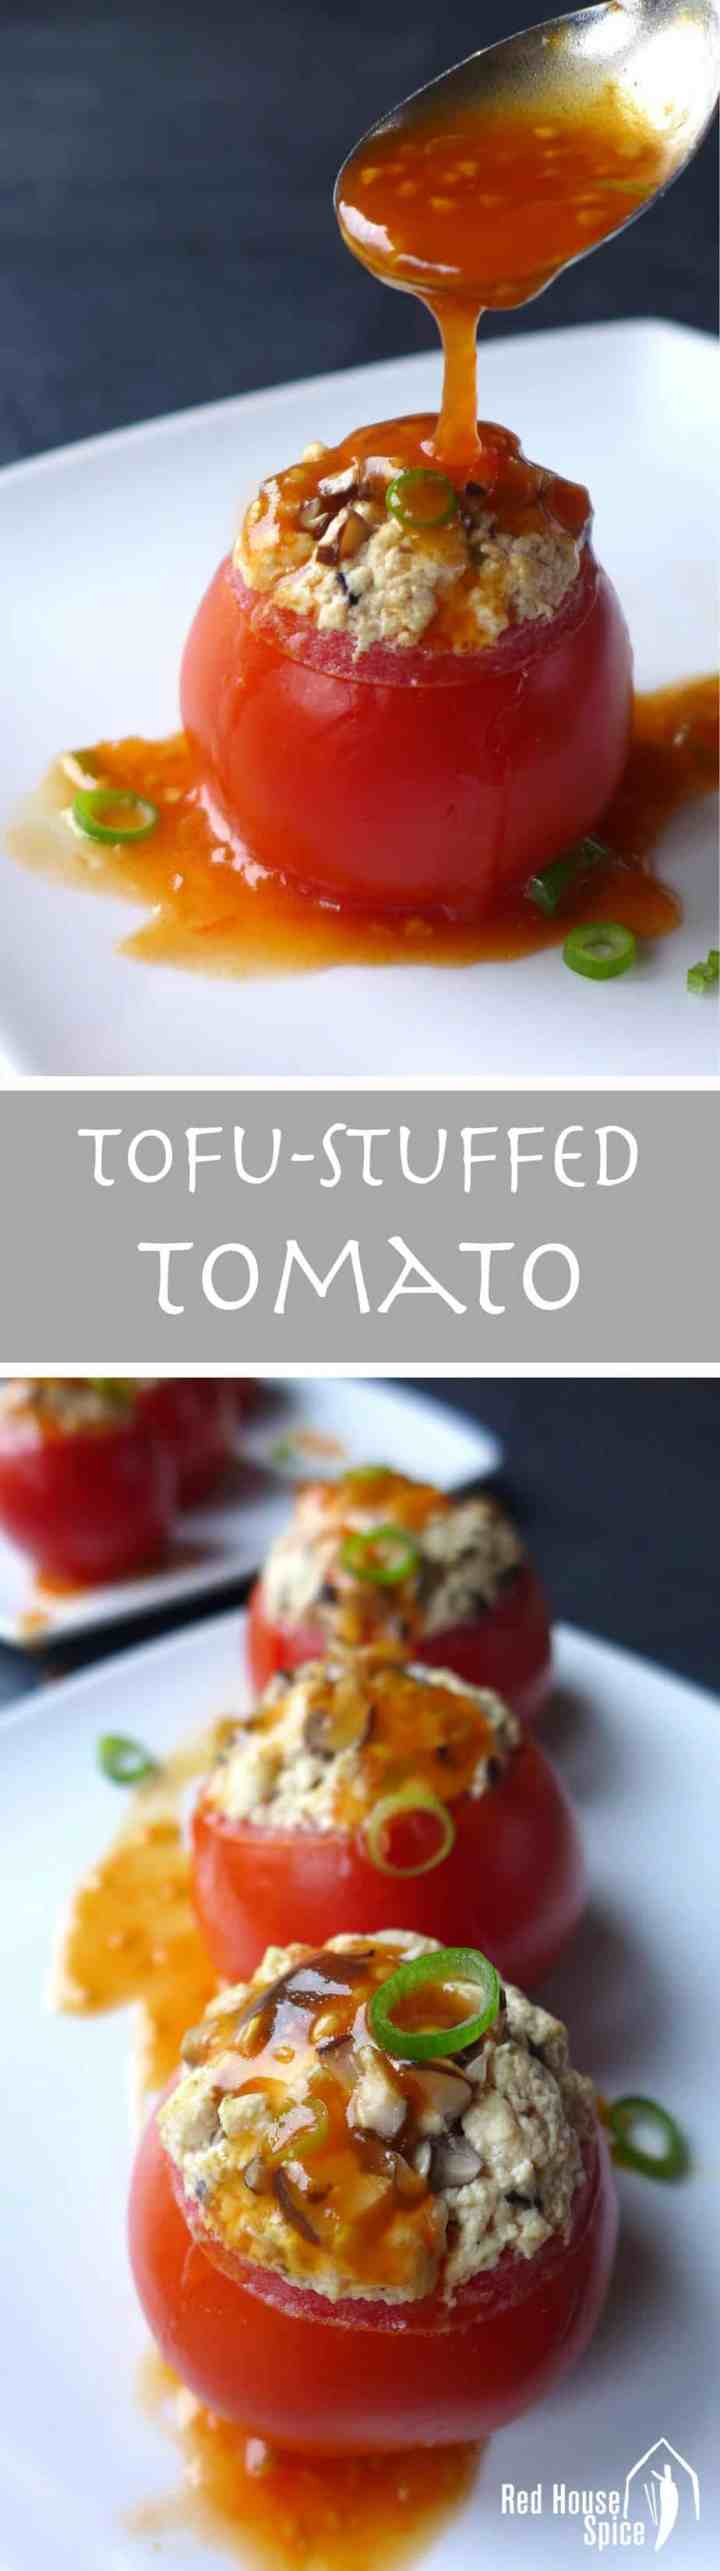 Juicy tomatoes are hollowed and steamed with well seasoned tofu crumbs. These tofu-stuffed tomatoes are then served with a scrumptious sweet and sour sauce.